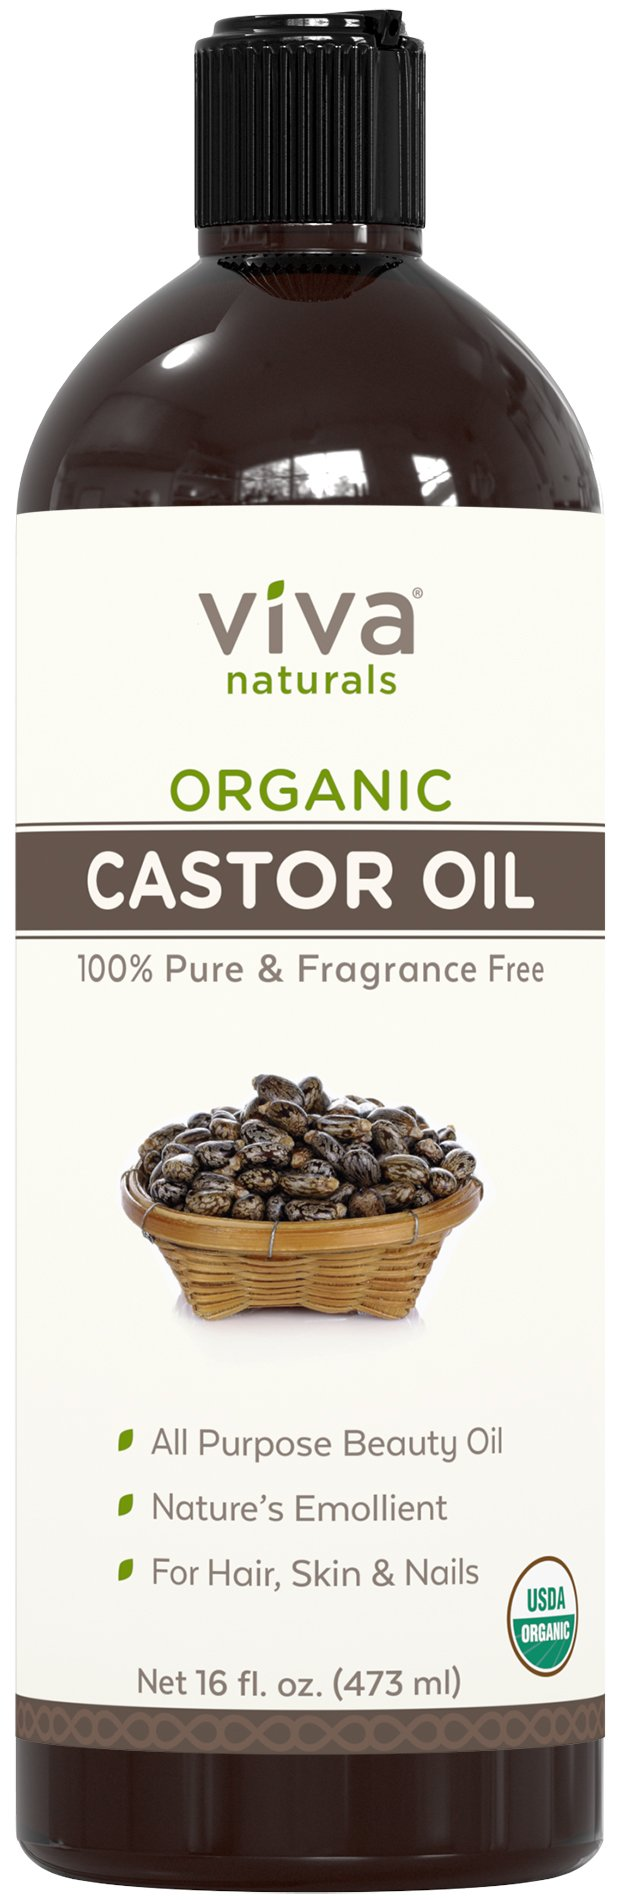 Viva Naturals Certified Organic Castor Oil (16 oz) – 100% Pure and Hexane Free + BONUS Mascara Kit Included, Perfect for Hair Care, Eyelashes and Brows by Viva Naturals (Image #2)